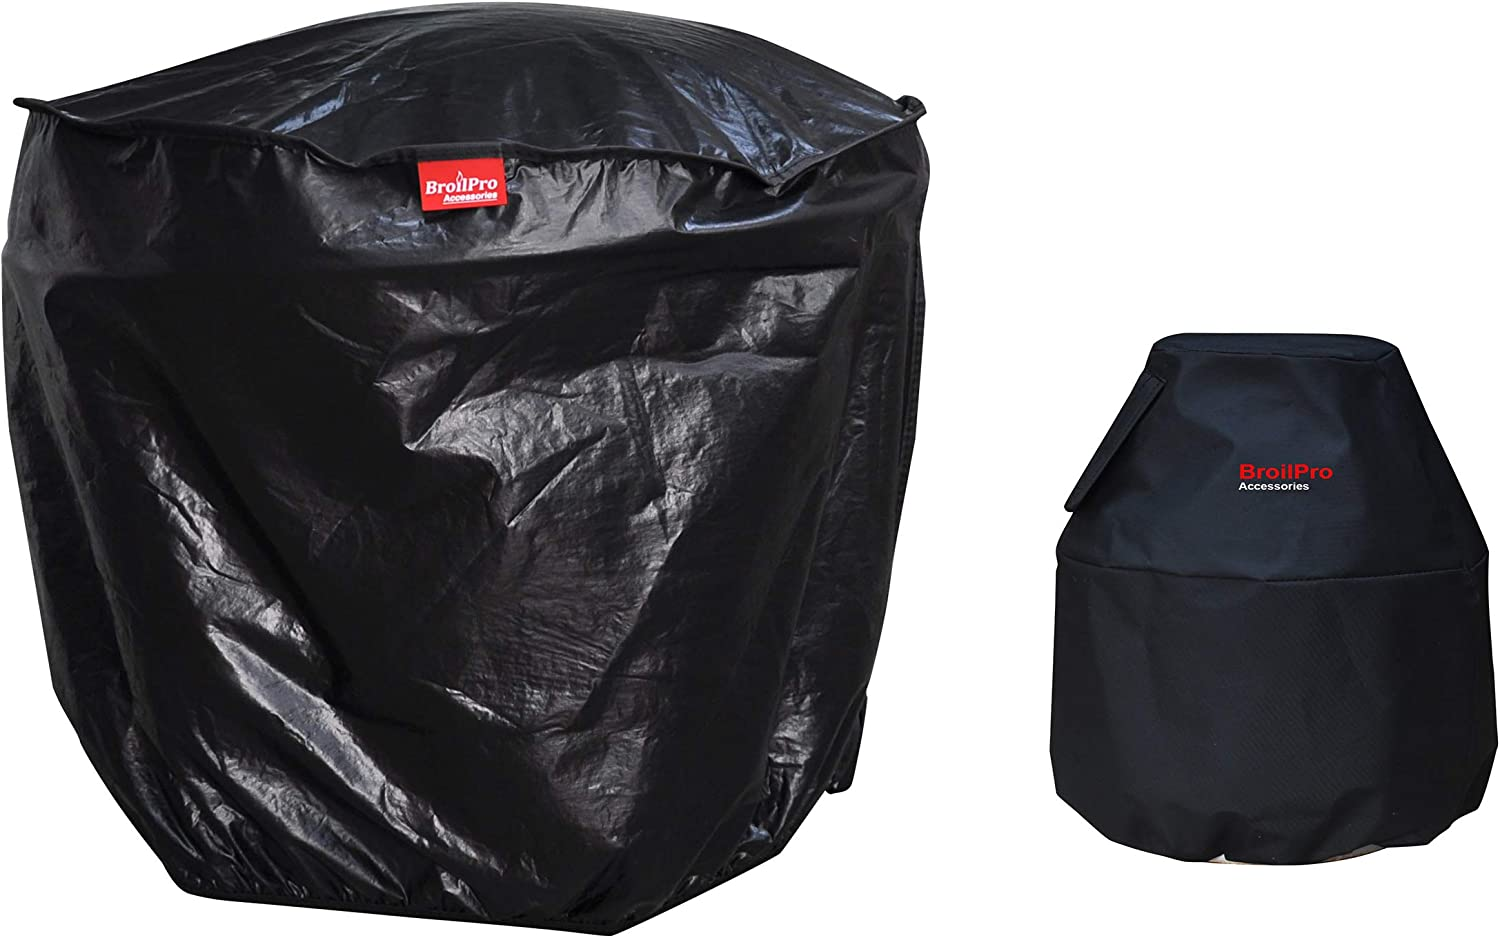 BroilPro Accessories The Big Easy Turkey Fryer Cover - Included Black Tank Cover